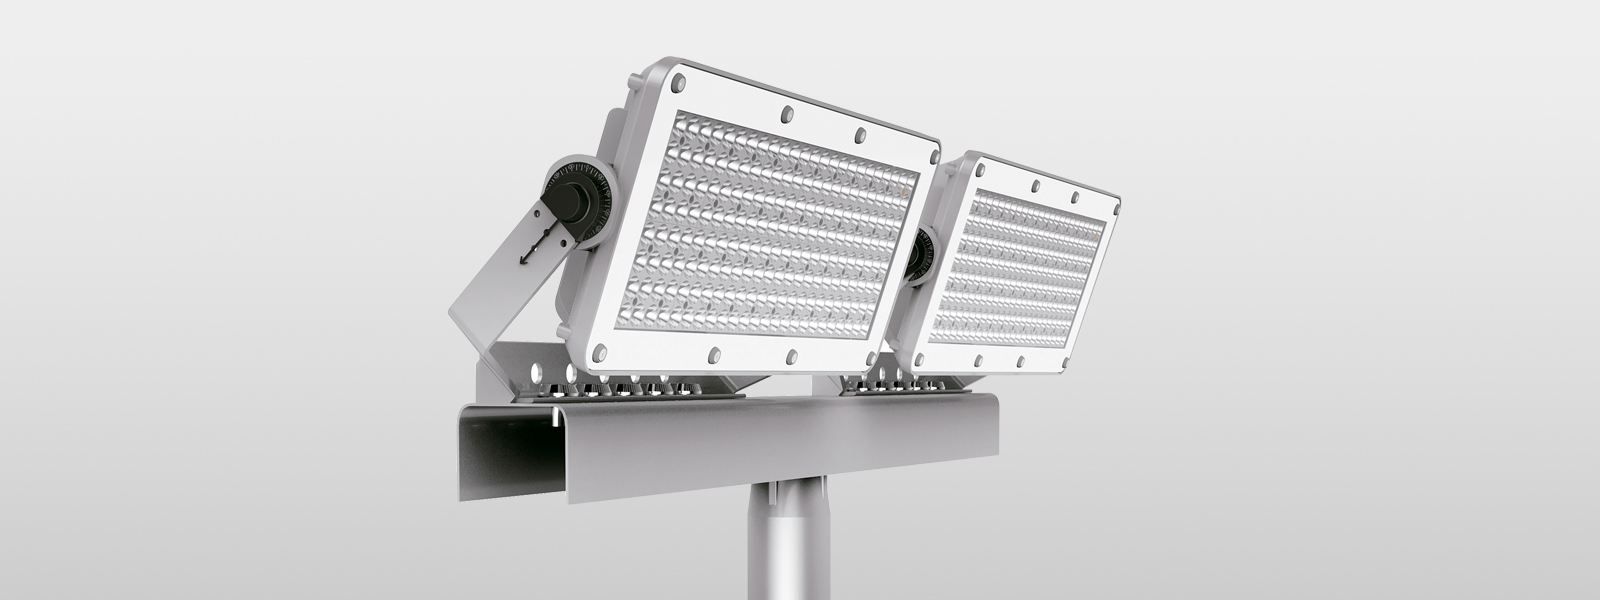 Lighting for stadiums and football pitches